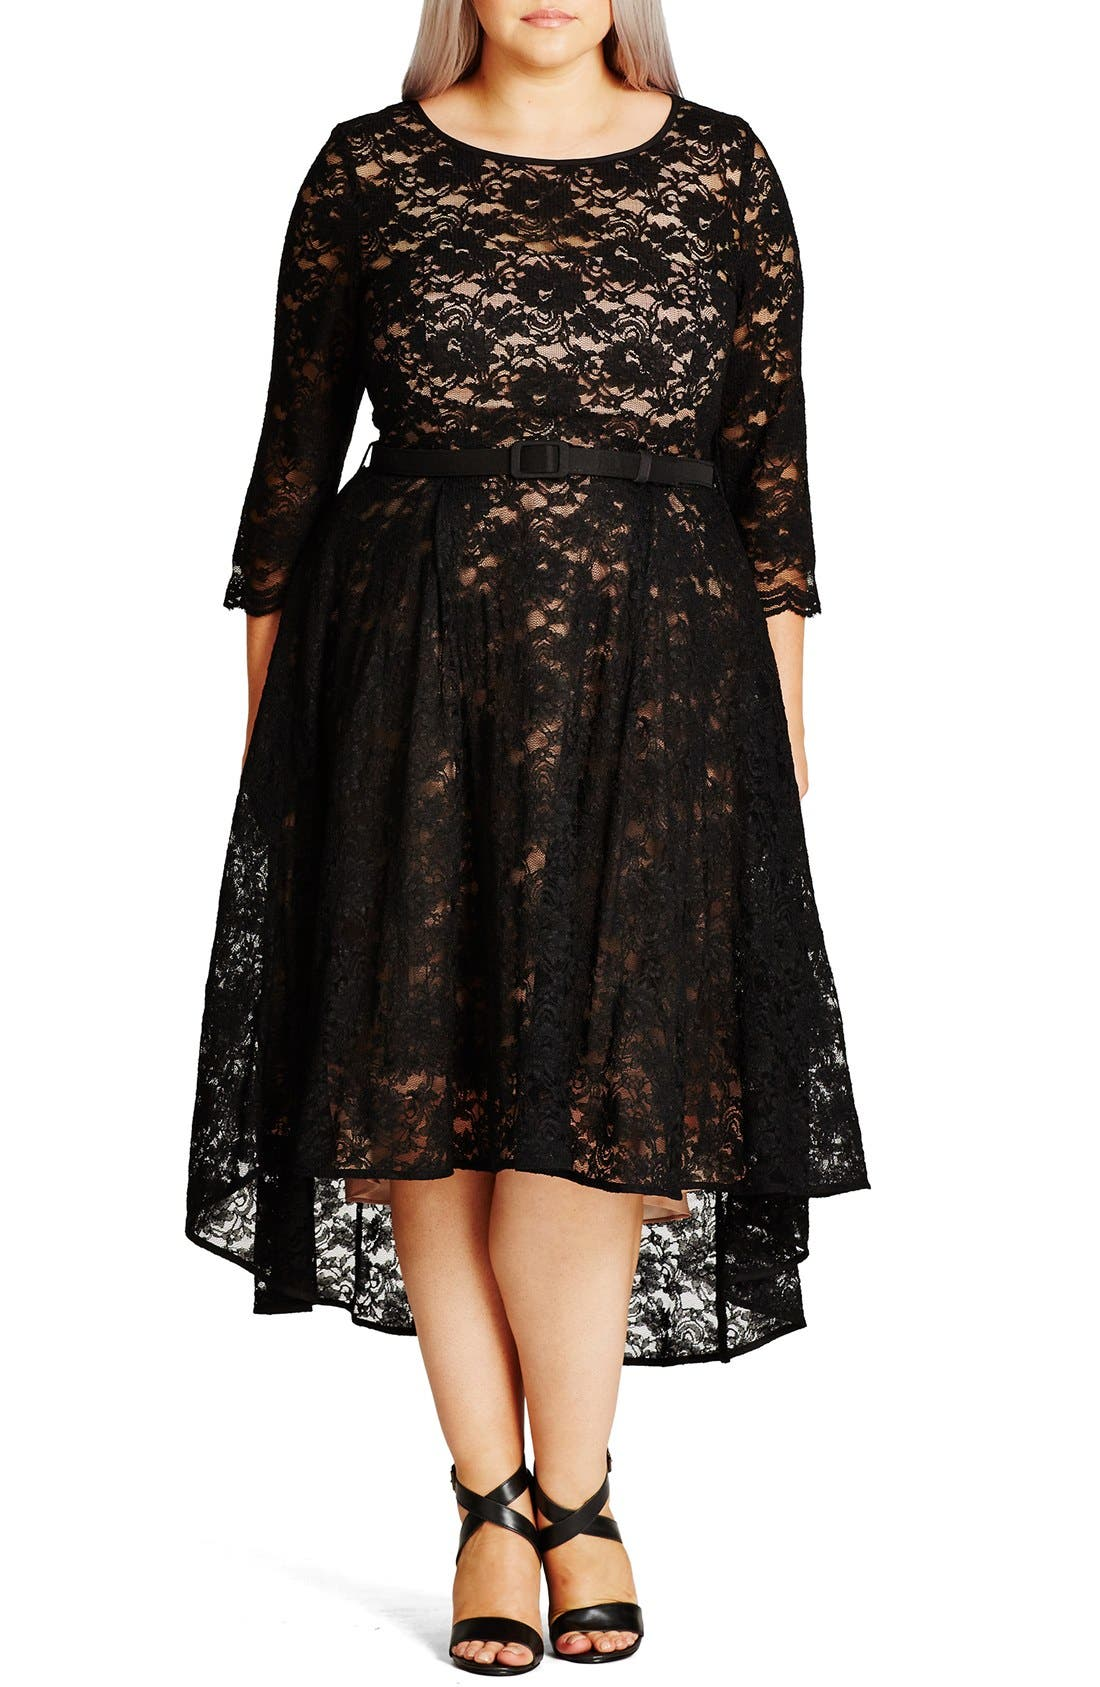 Alternate Image 1 Selected - City Chic 'Lace Lover' High/Low Midi Dress (Plus Size)